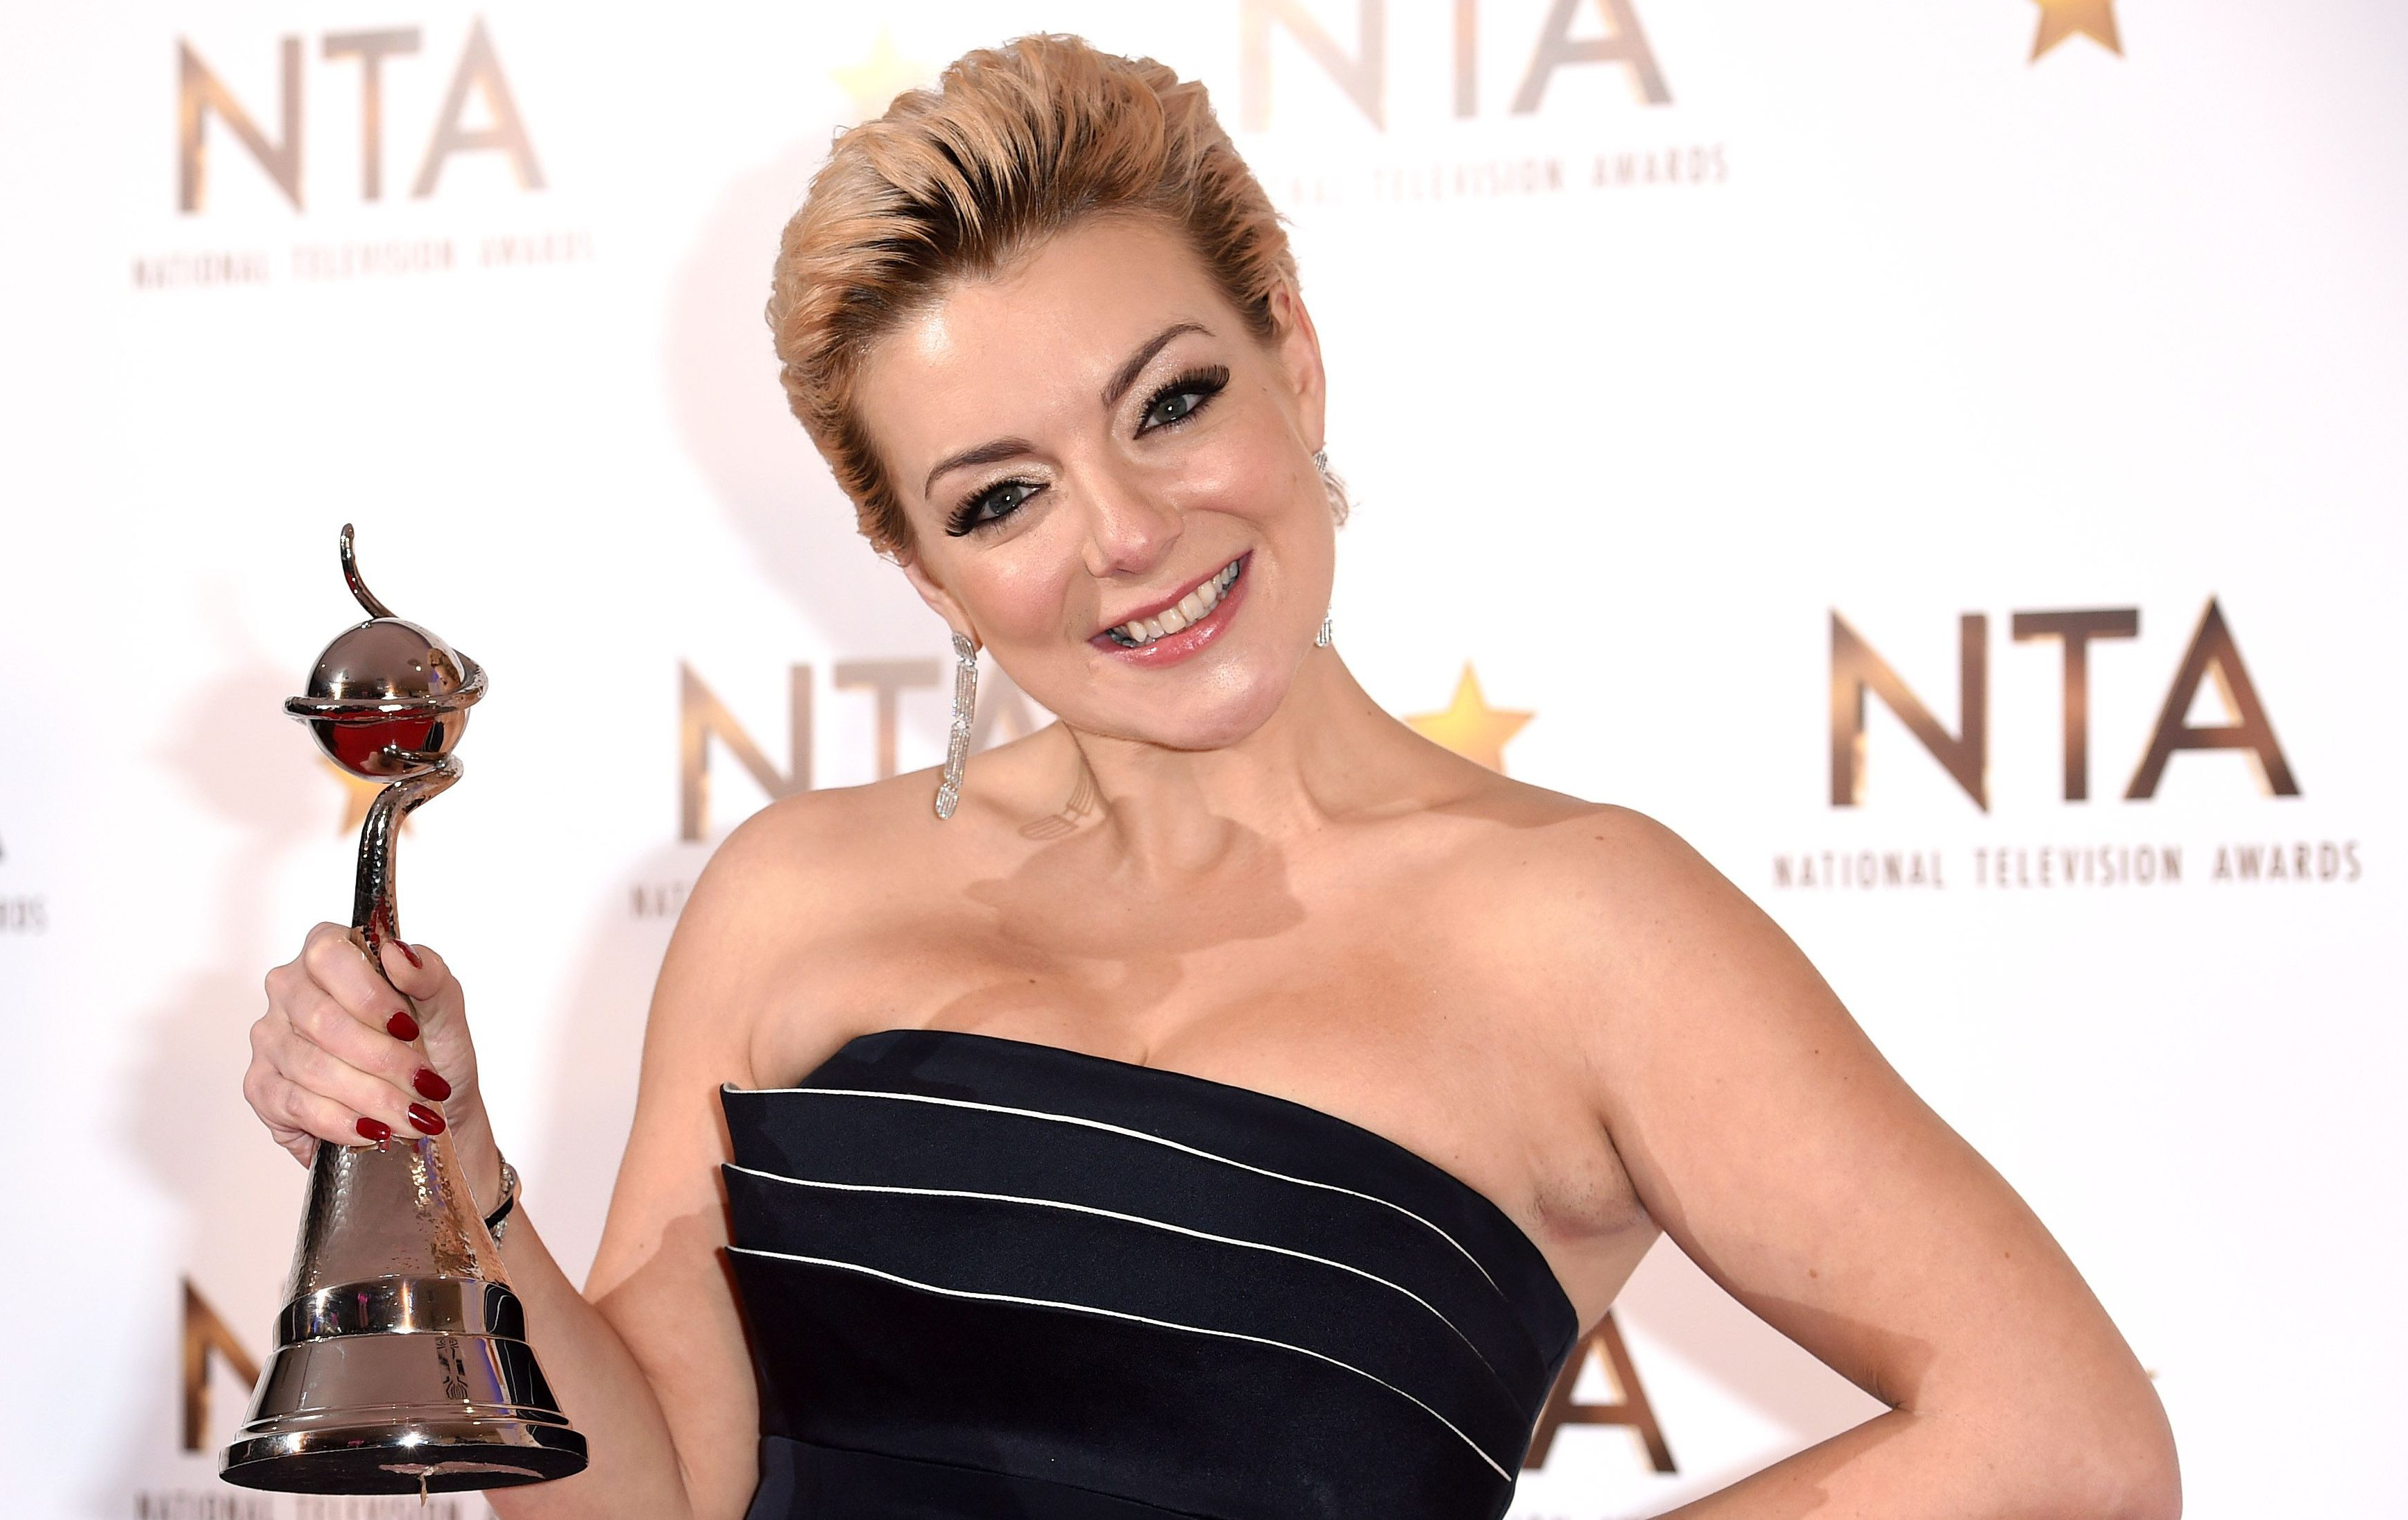 Ricky Tomlinson defends Sheridan Smith as 'fling with Paul Nicholls' revealed